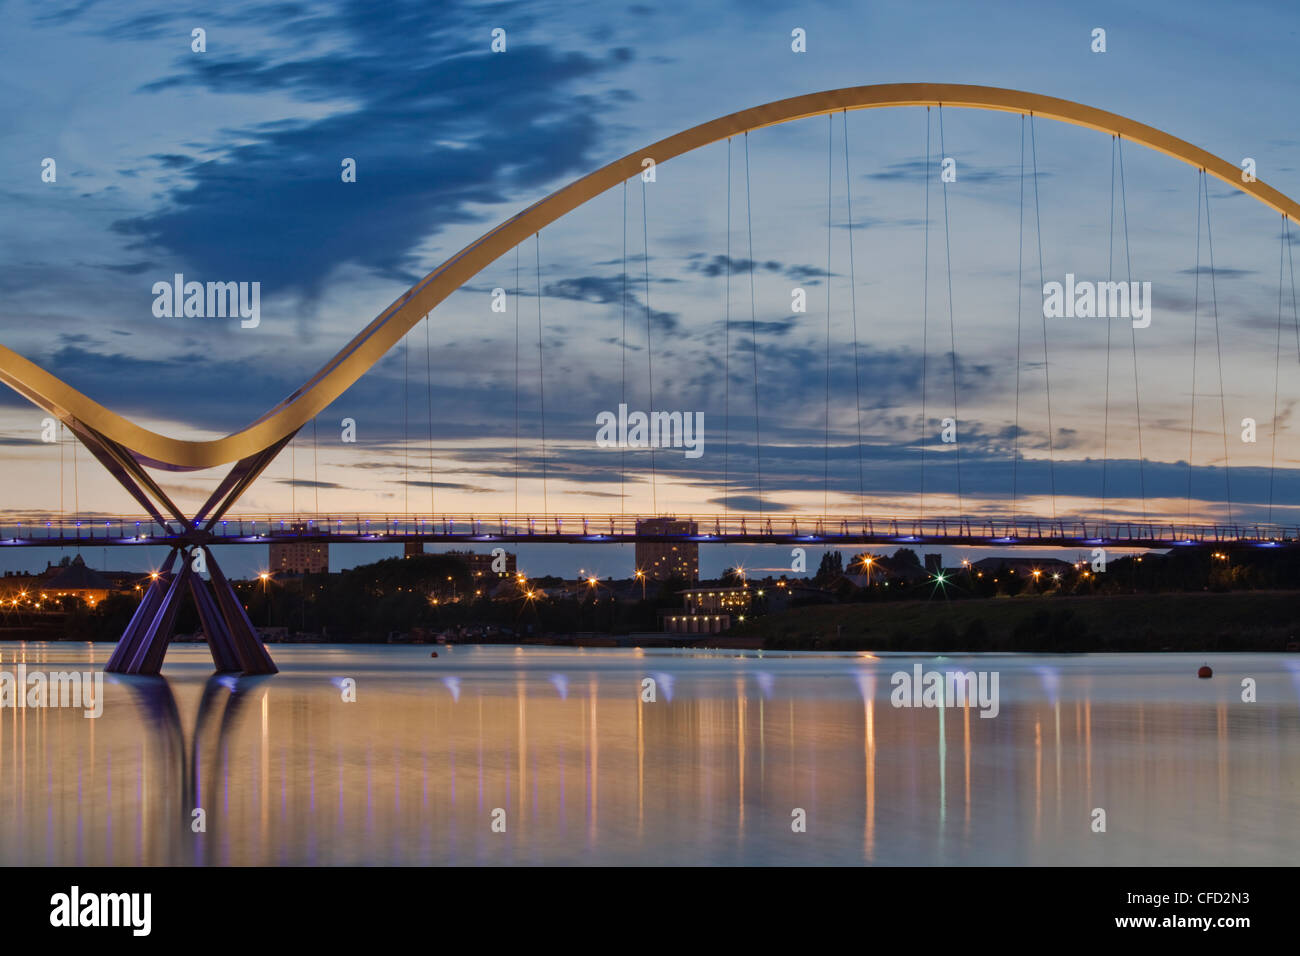 Infinity Bridge, built in 2009, over the River Tees, Stockton-on-Tees, County Durham, England, United Kingdom, Europe Stock Photo